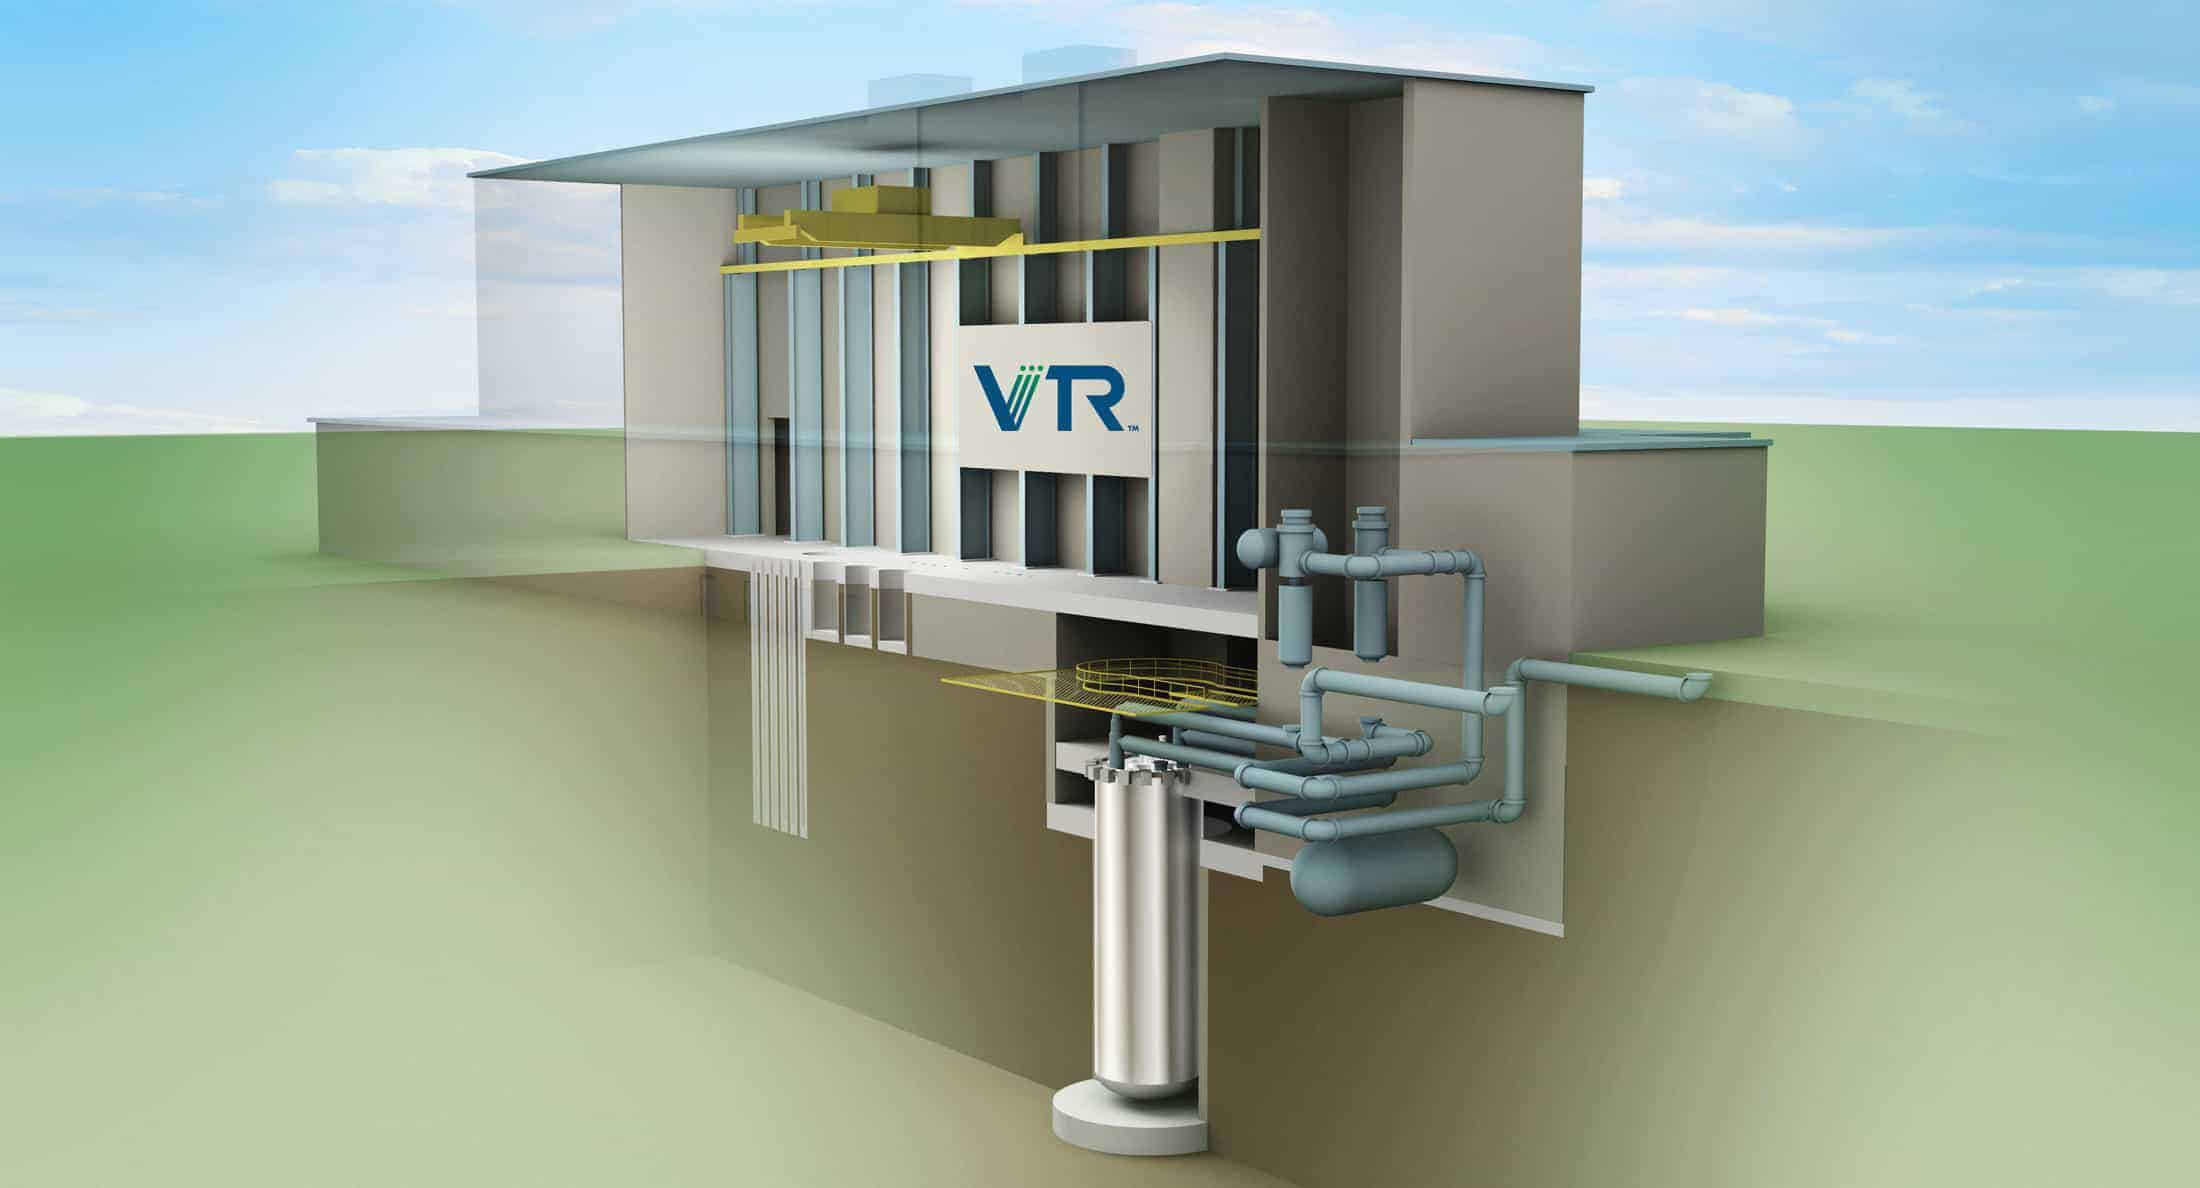 Rendering of the Versatile Test Reactor (VTR) nuclear test reactor Facility